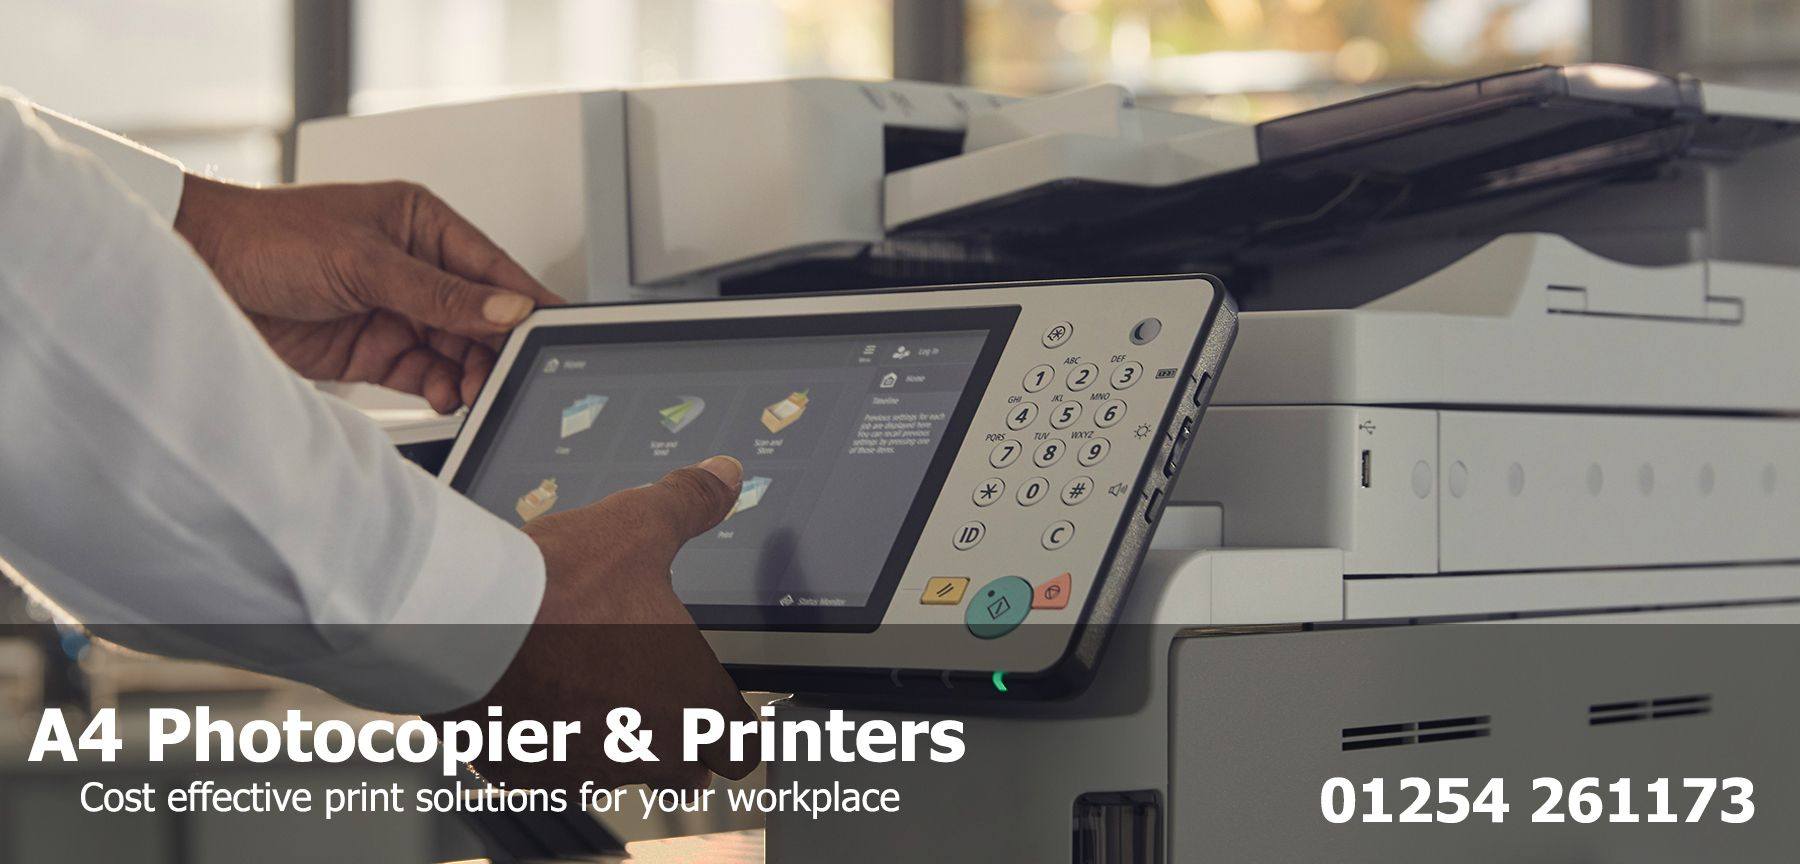 a4 office photocopiers - managed print services - a4 photocopier cost per copy